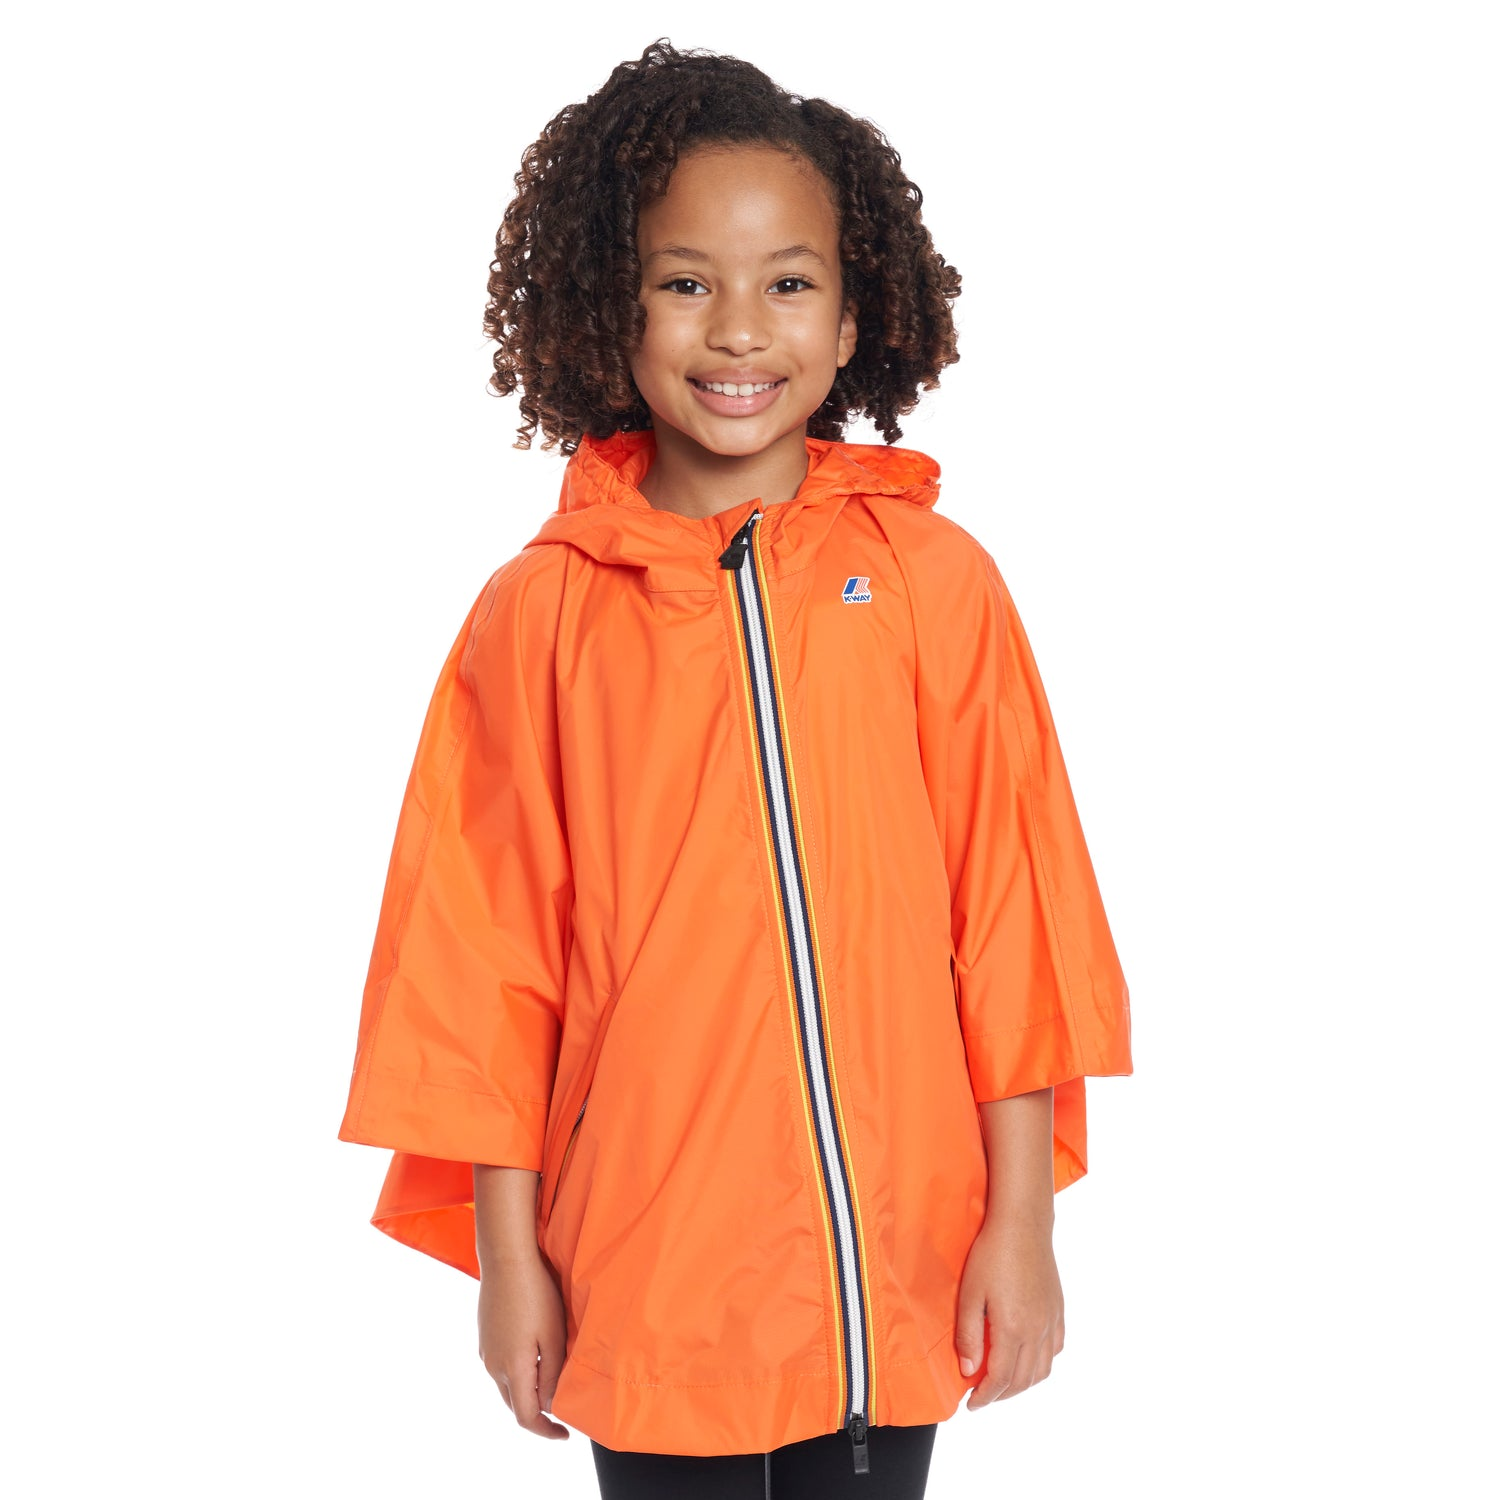 Kids Le Vrai 3.0 Morgan Poncho Orange Flame - Front